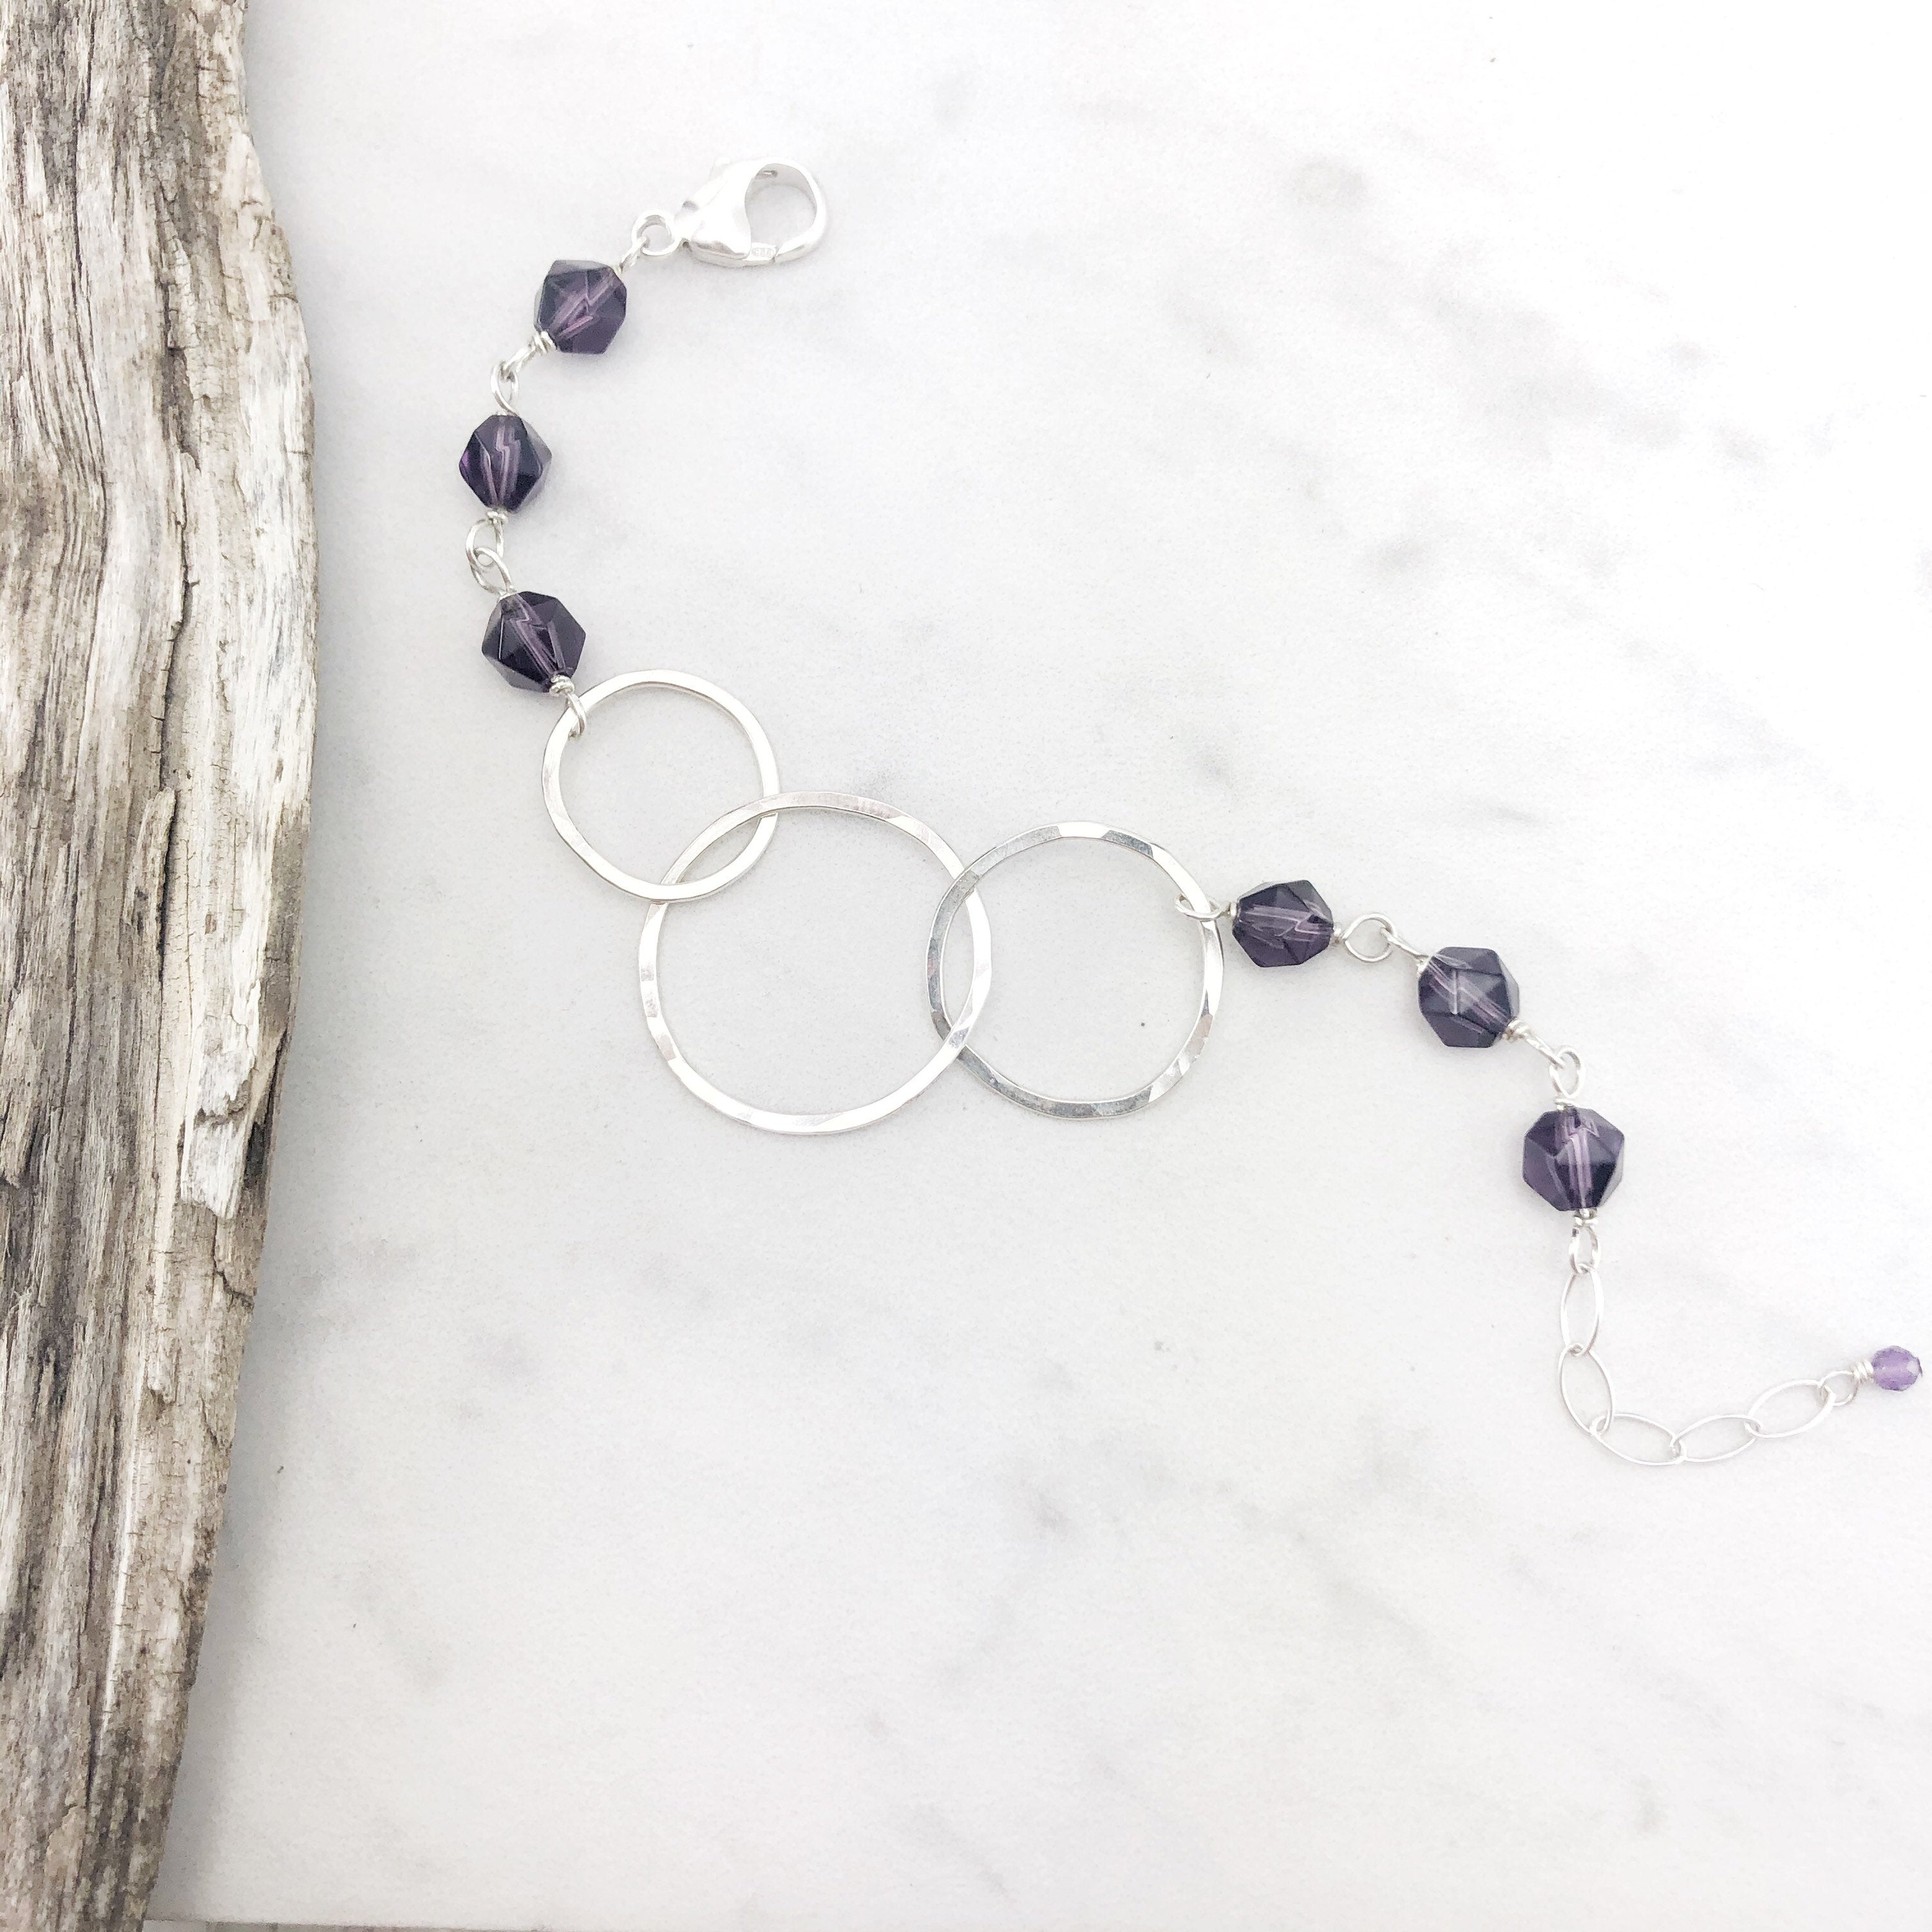 Hammered Sterling Silver Circle Link Bracelet with Amethyst